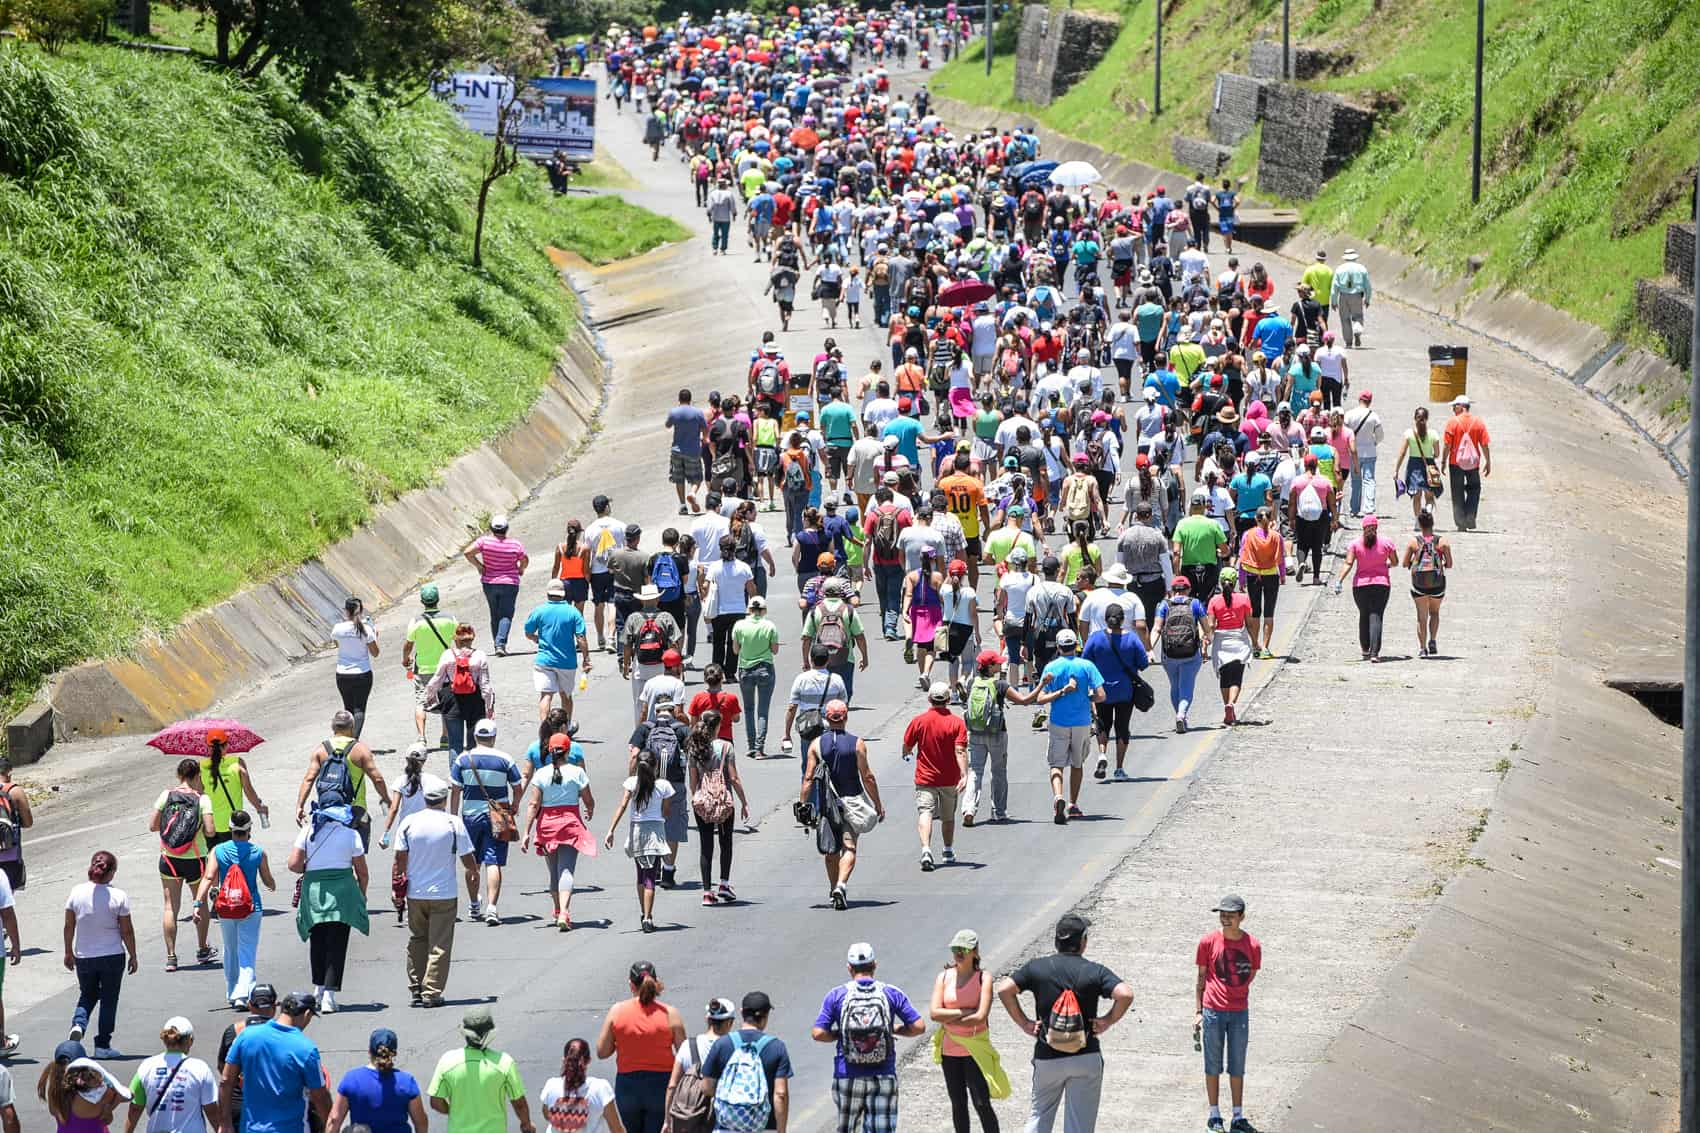 The masses descend on Cartago for the annual pilgrimage to the Basílica de los Ángeles on August 1, 2015.